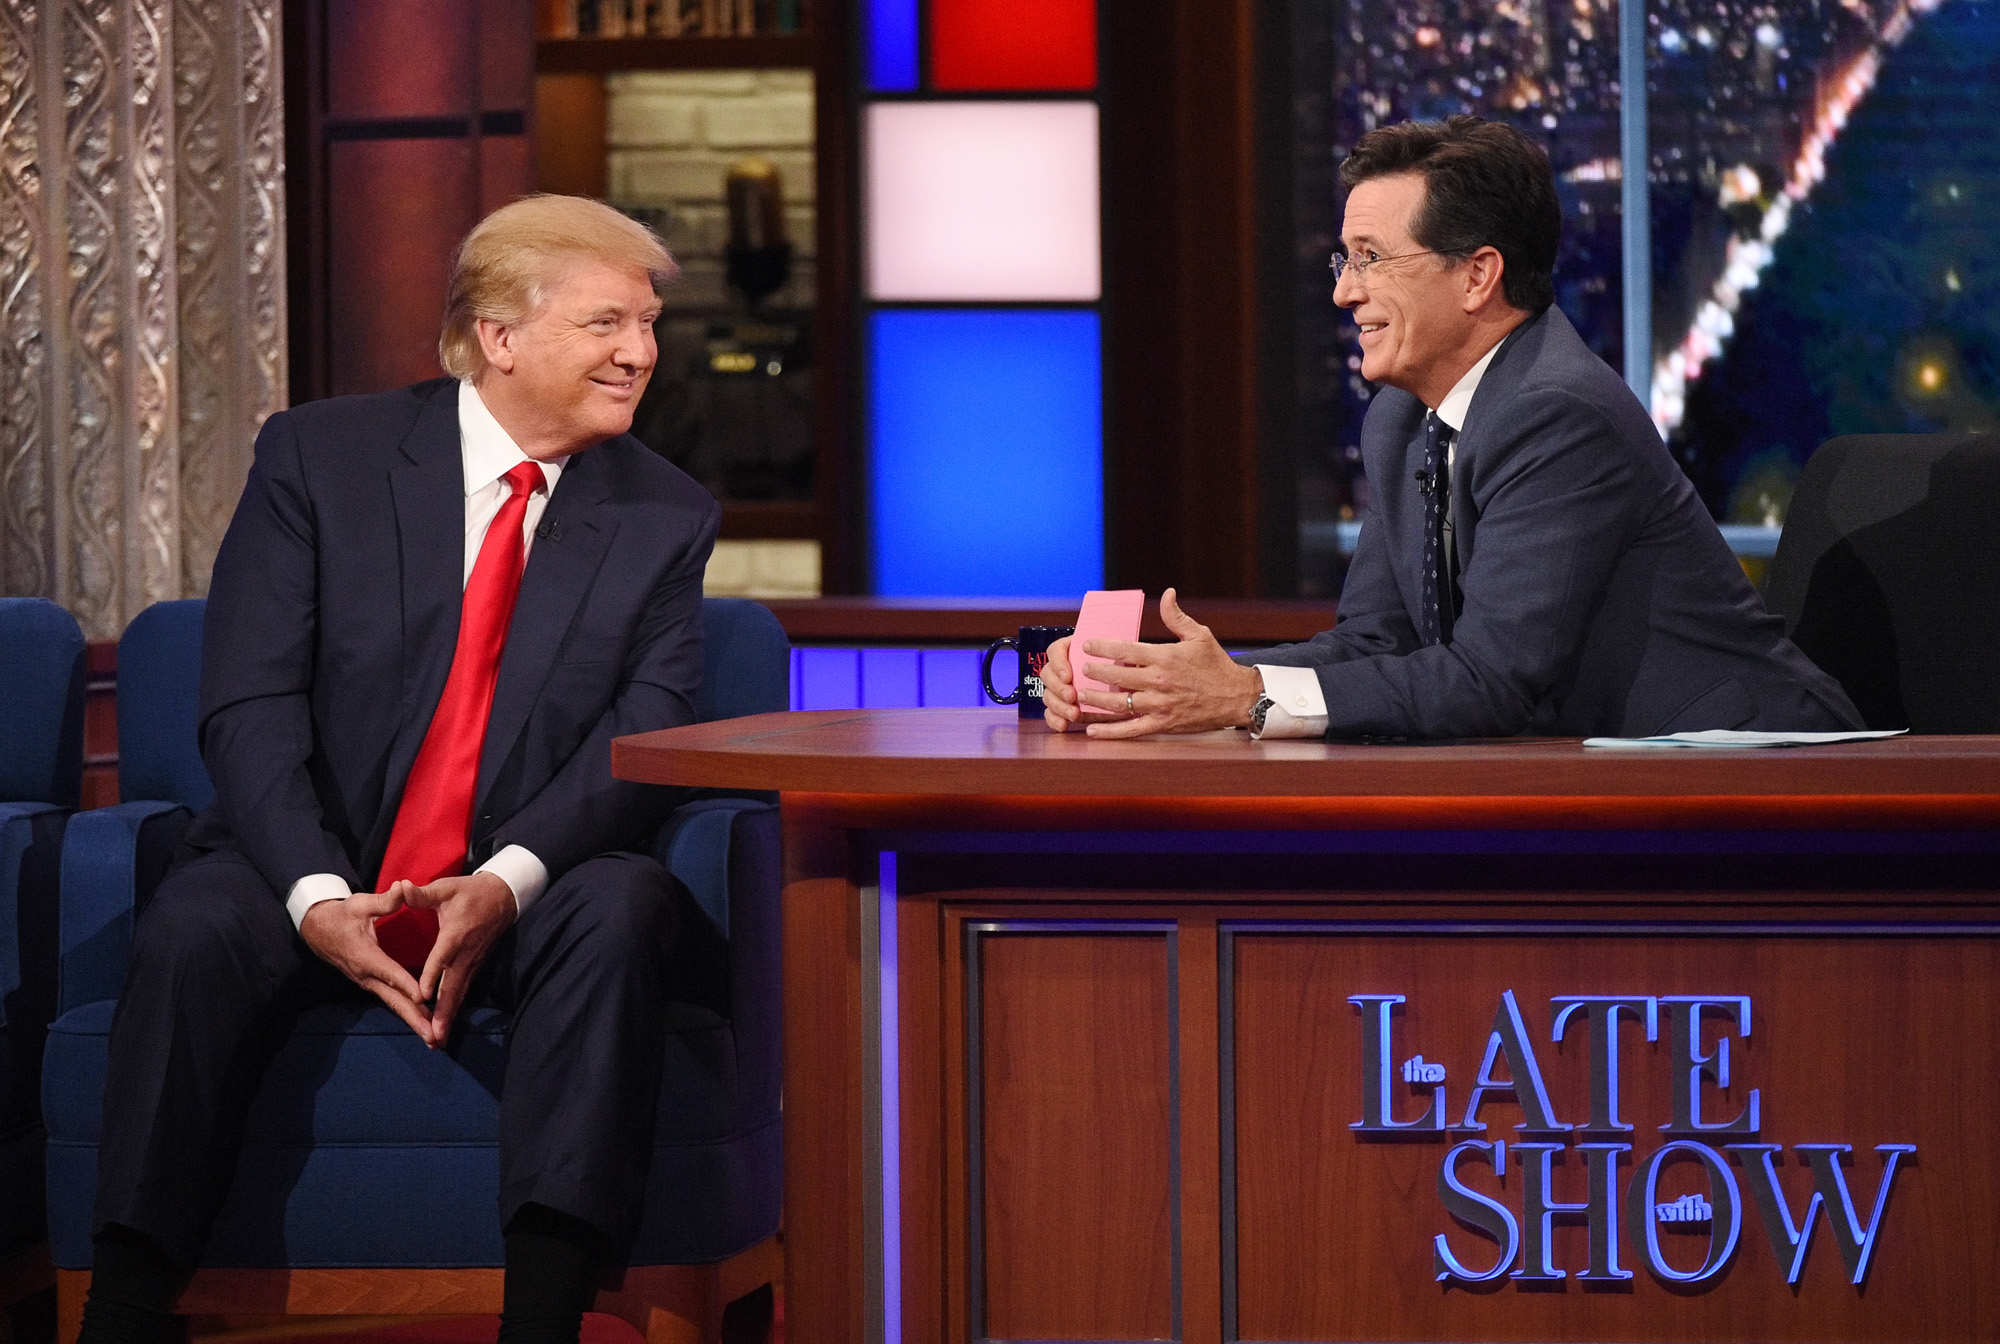 Donald Trump talks about his US Presidential campaign  on The Late Show with Stephen Colbert, Tuesday Sept. 22, 2015 on the CBS Television Network. Photo: Jeffrey R. Staab/CBS ©2015 CBS Broadcasting Inc. All Rights Reserved